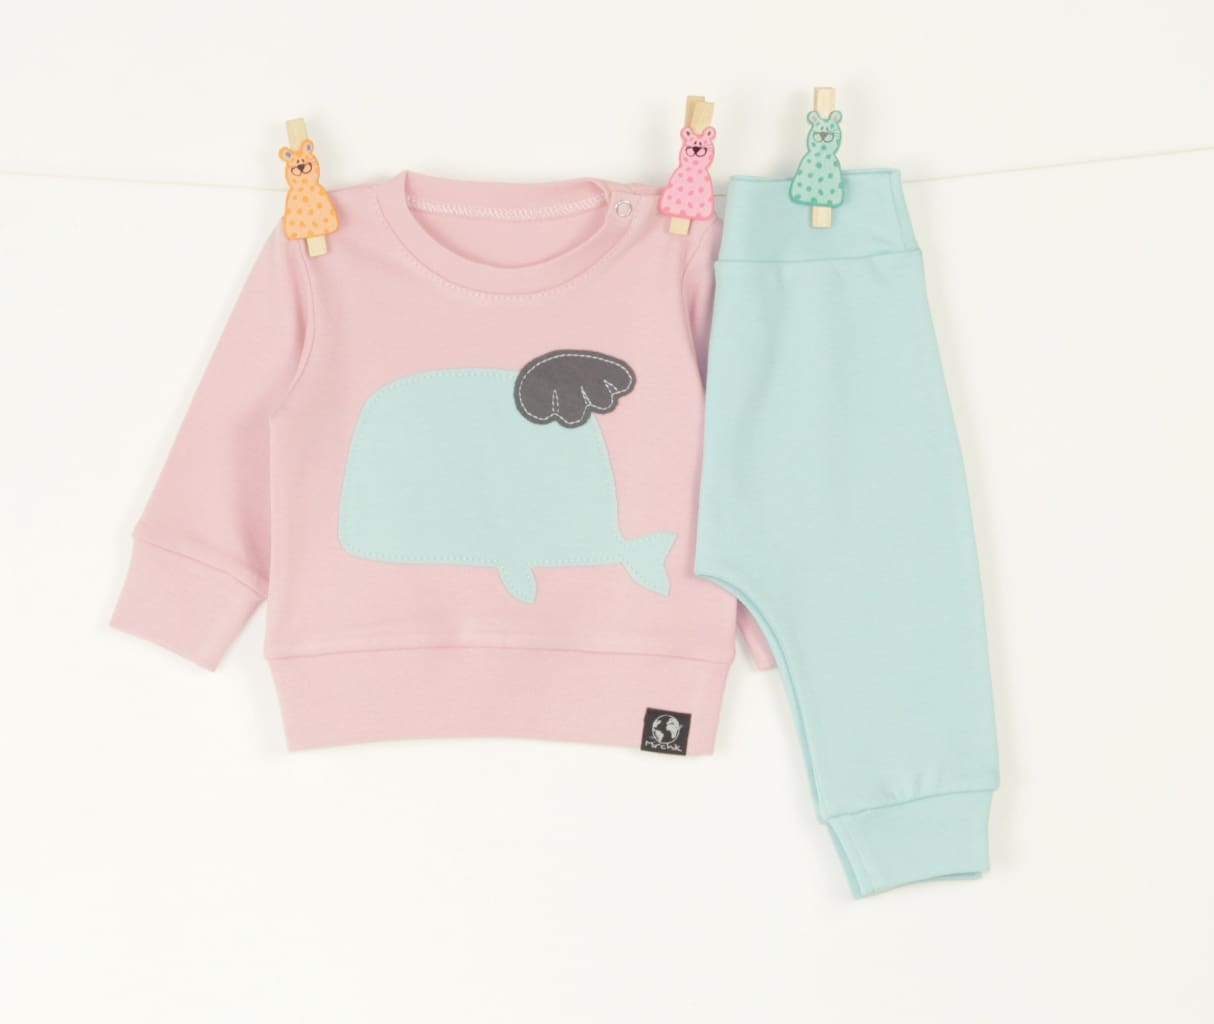 Baby Suit Whale - Baby Clothes